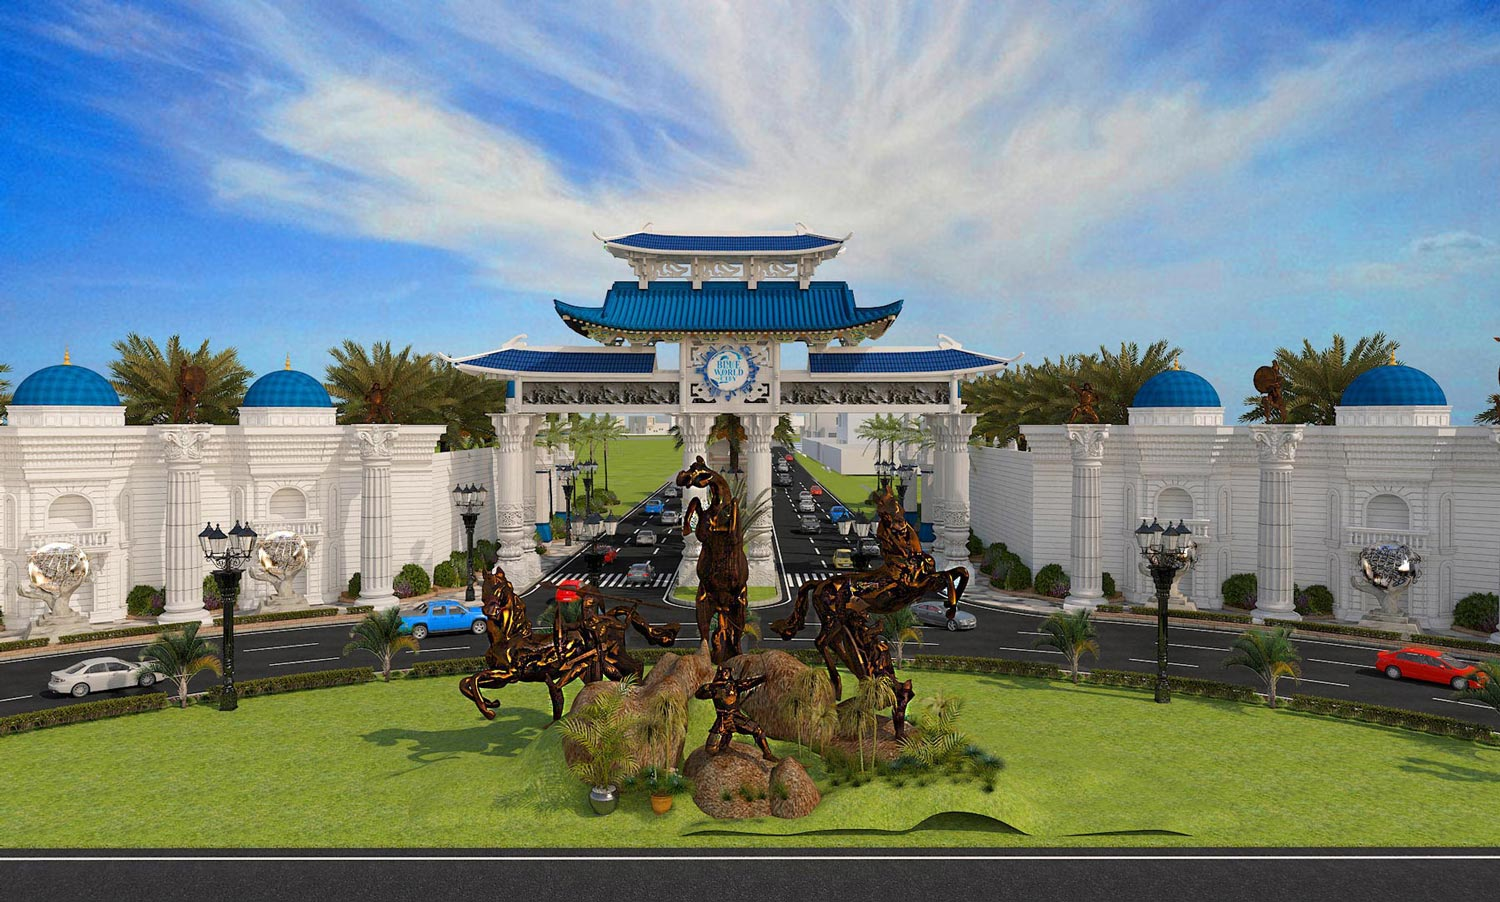 Salient features of Blue World City